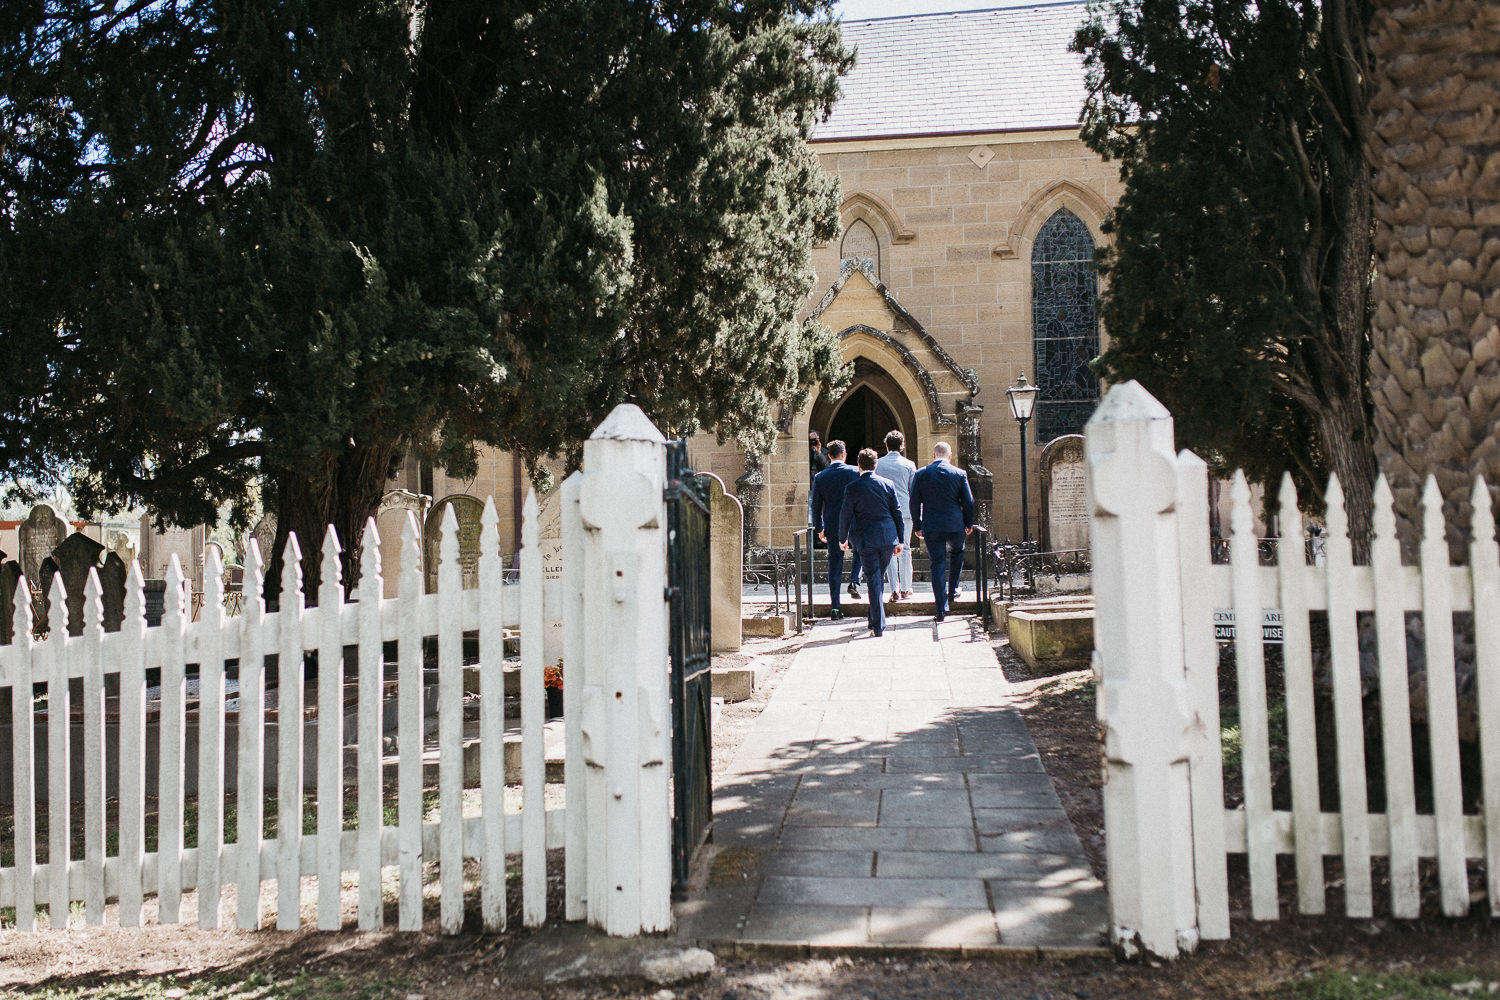 briars-country-lodge-wedding-bowral-nsw-miriam-andy-32